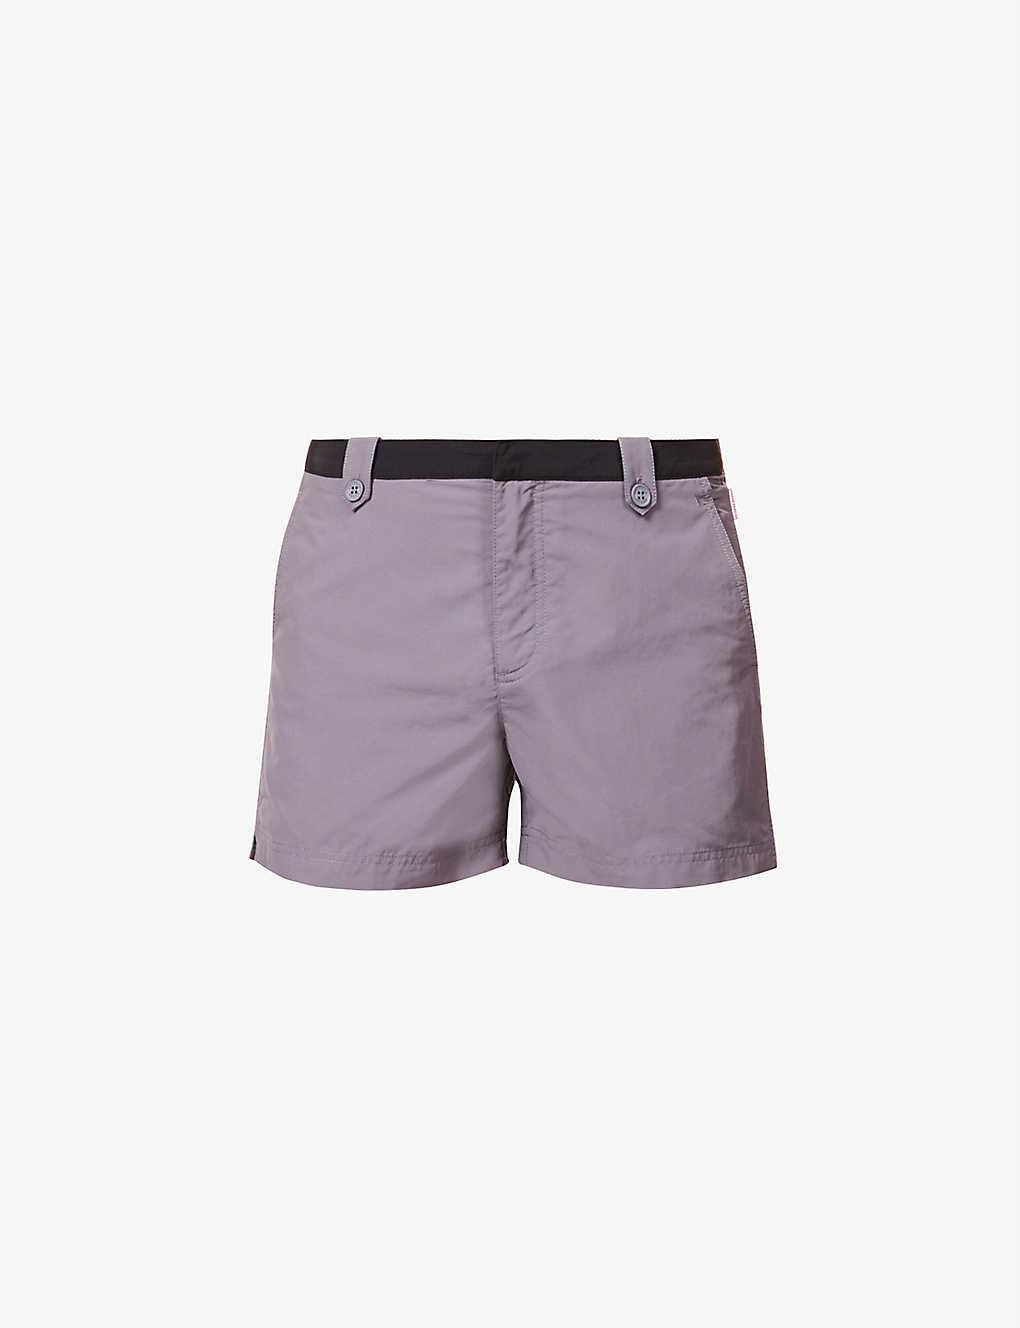 ORLEBAR BROWN: Orlebar Brown x 007 Bassett swim shorts